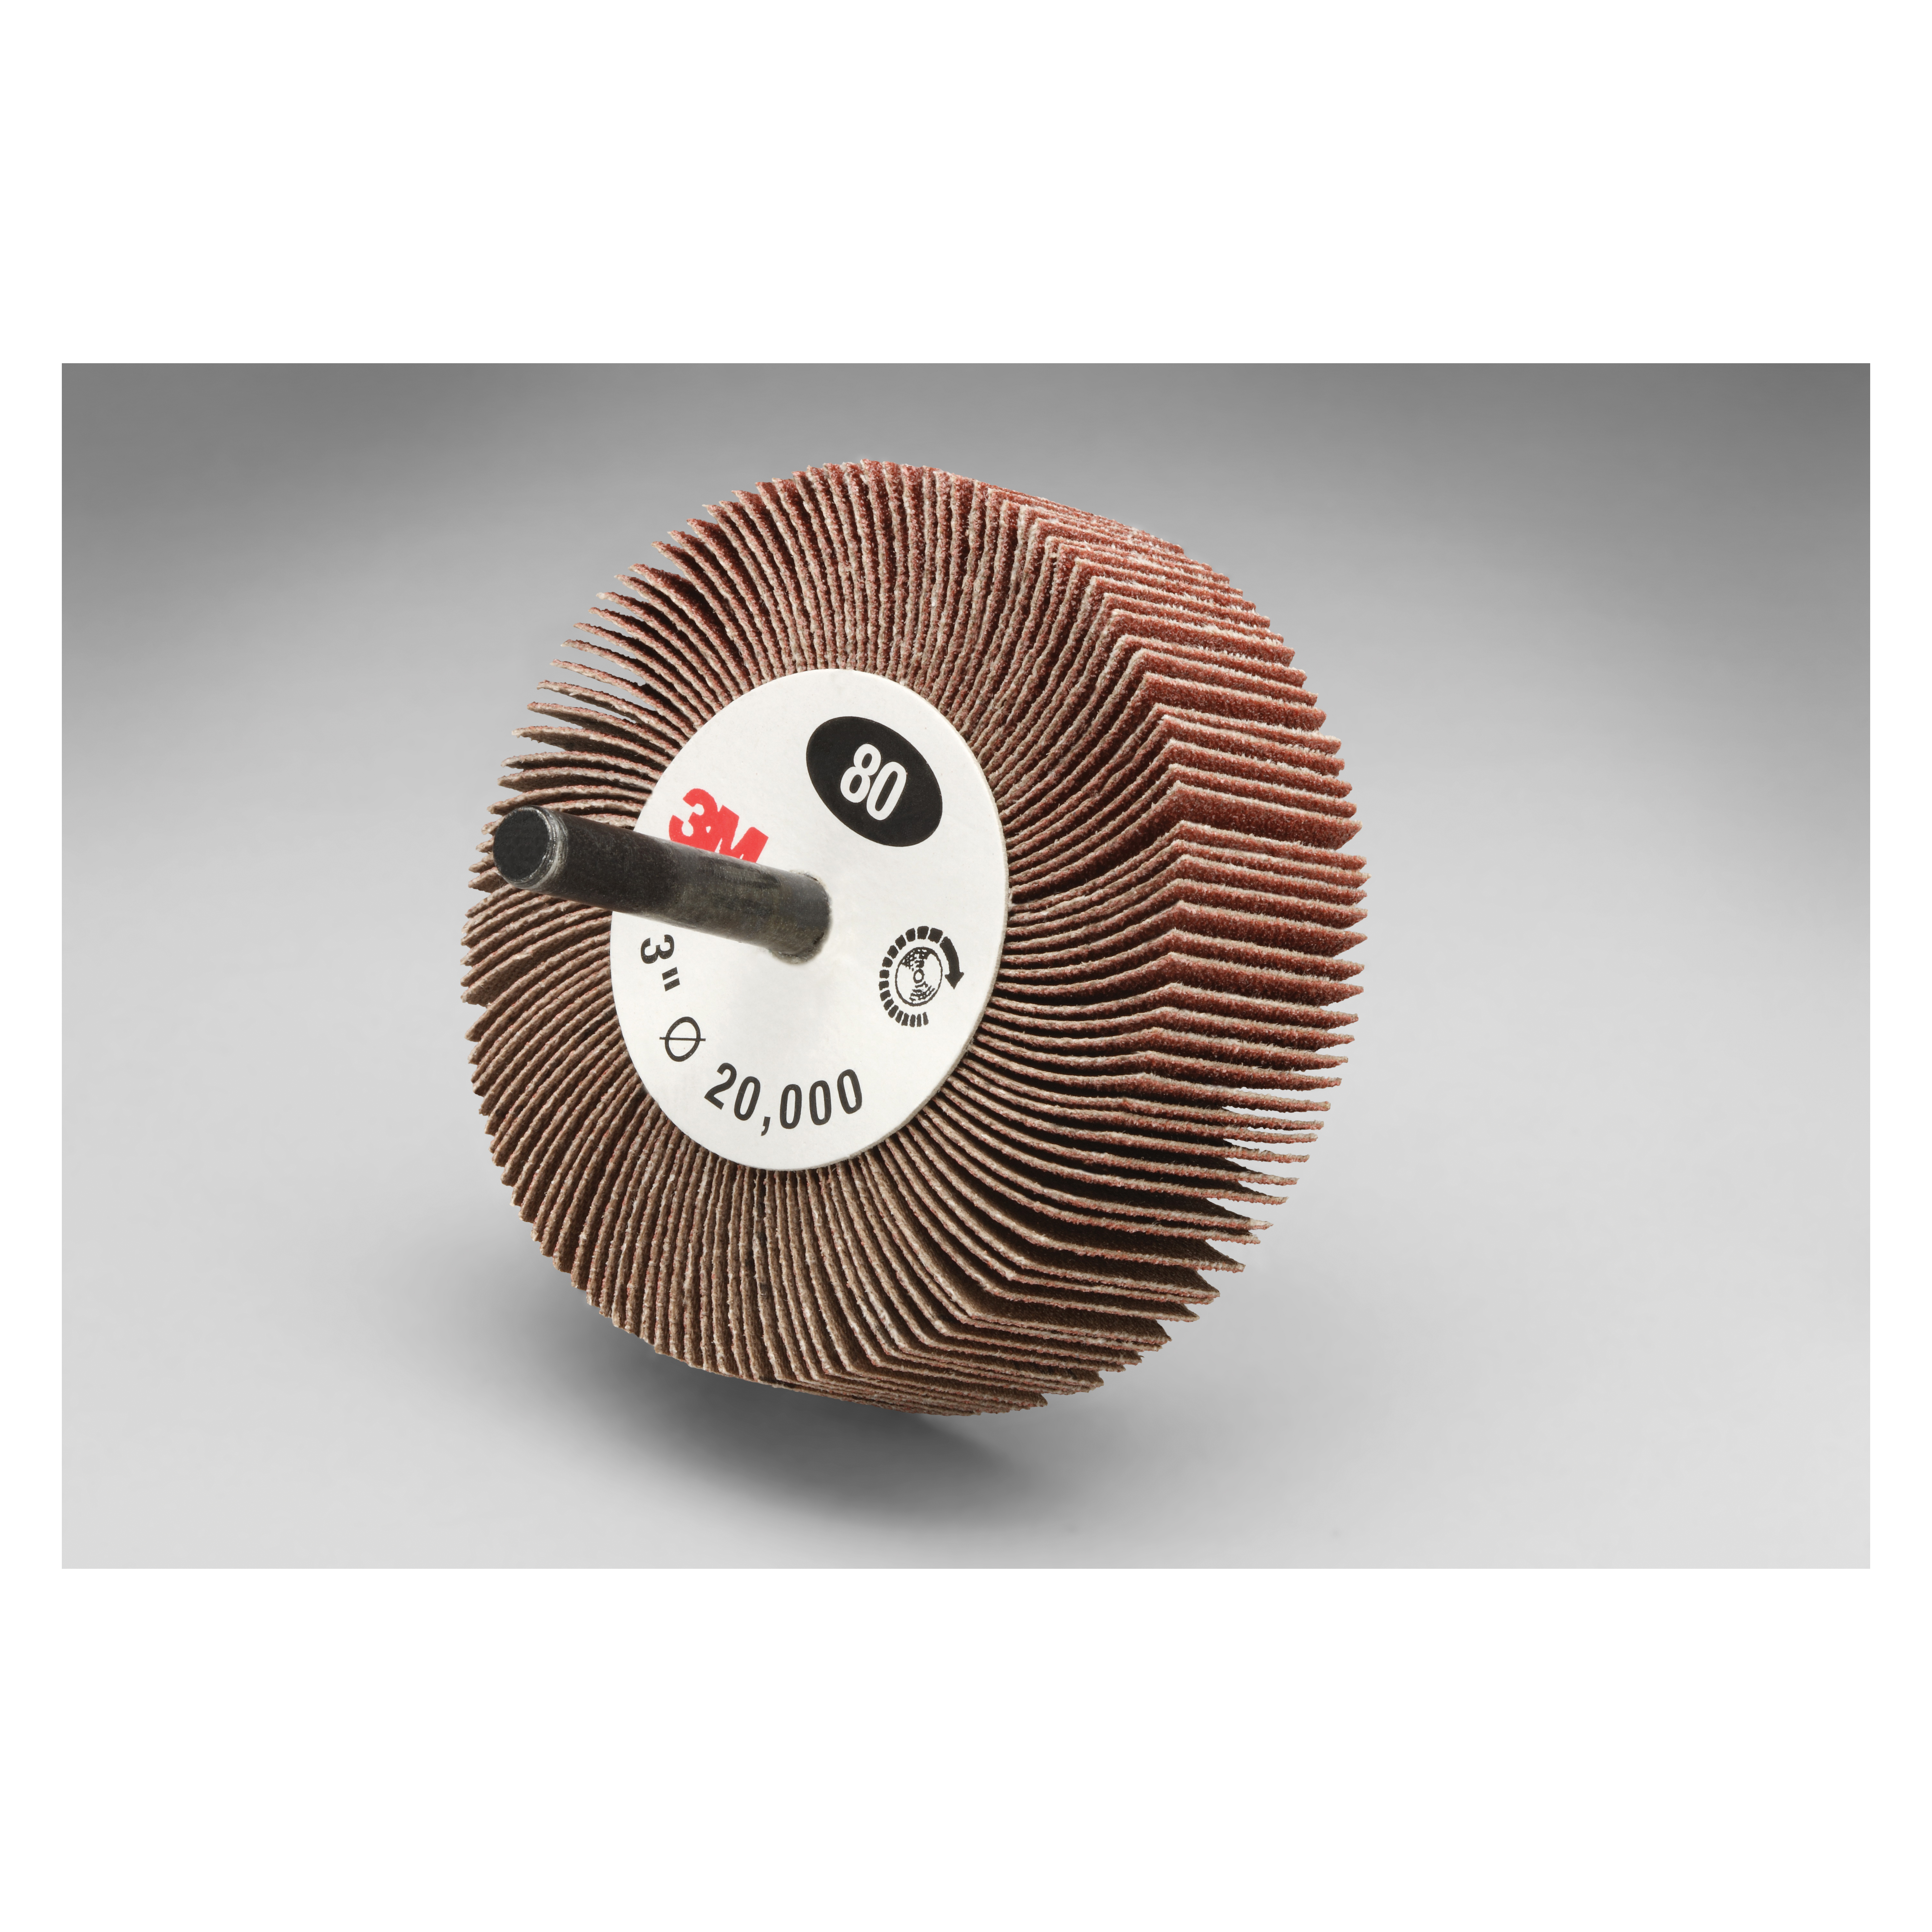 3M™ 051144-14656 Type 83 Mounted Coated Flap Wheel, 3 in Dia, 1 in W Face, 1/4 in Dia Shank, 80 Grit, Medium Grade, Aluminum Oxide Abrasive